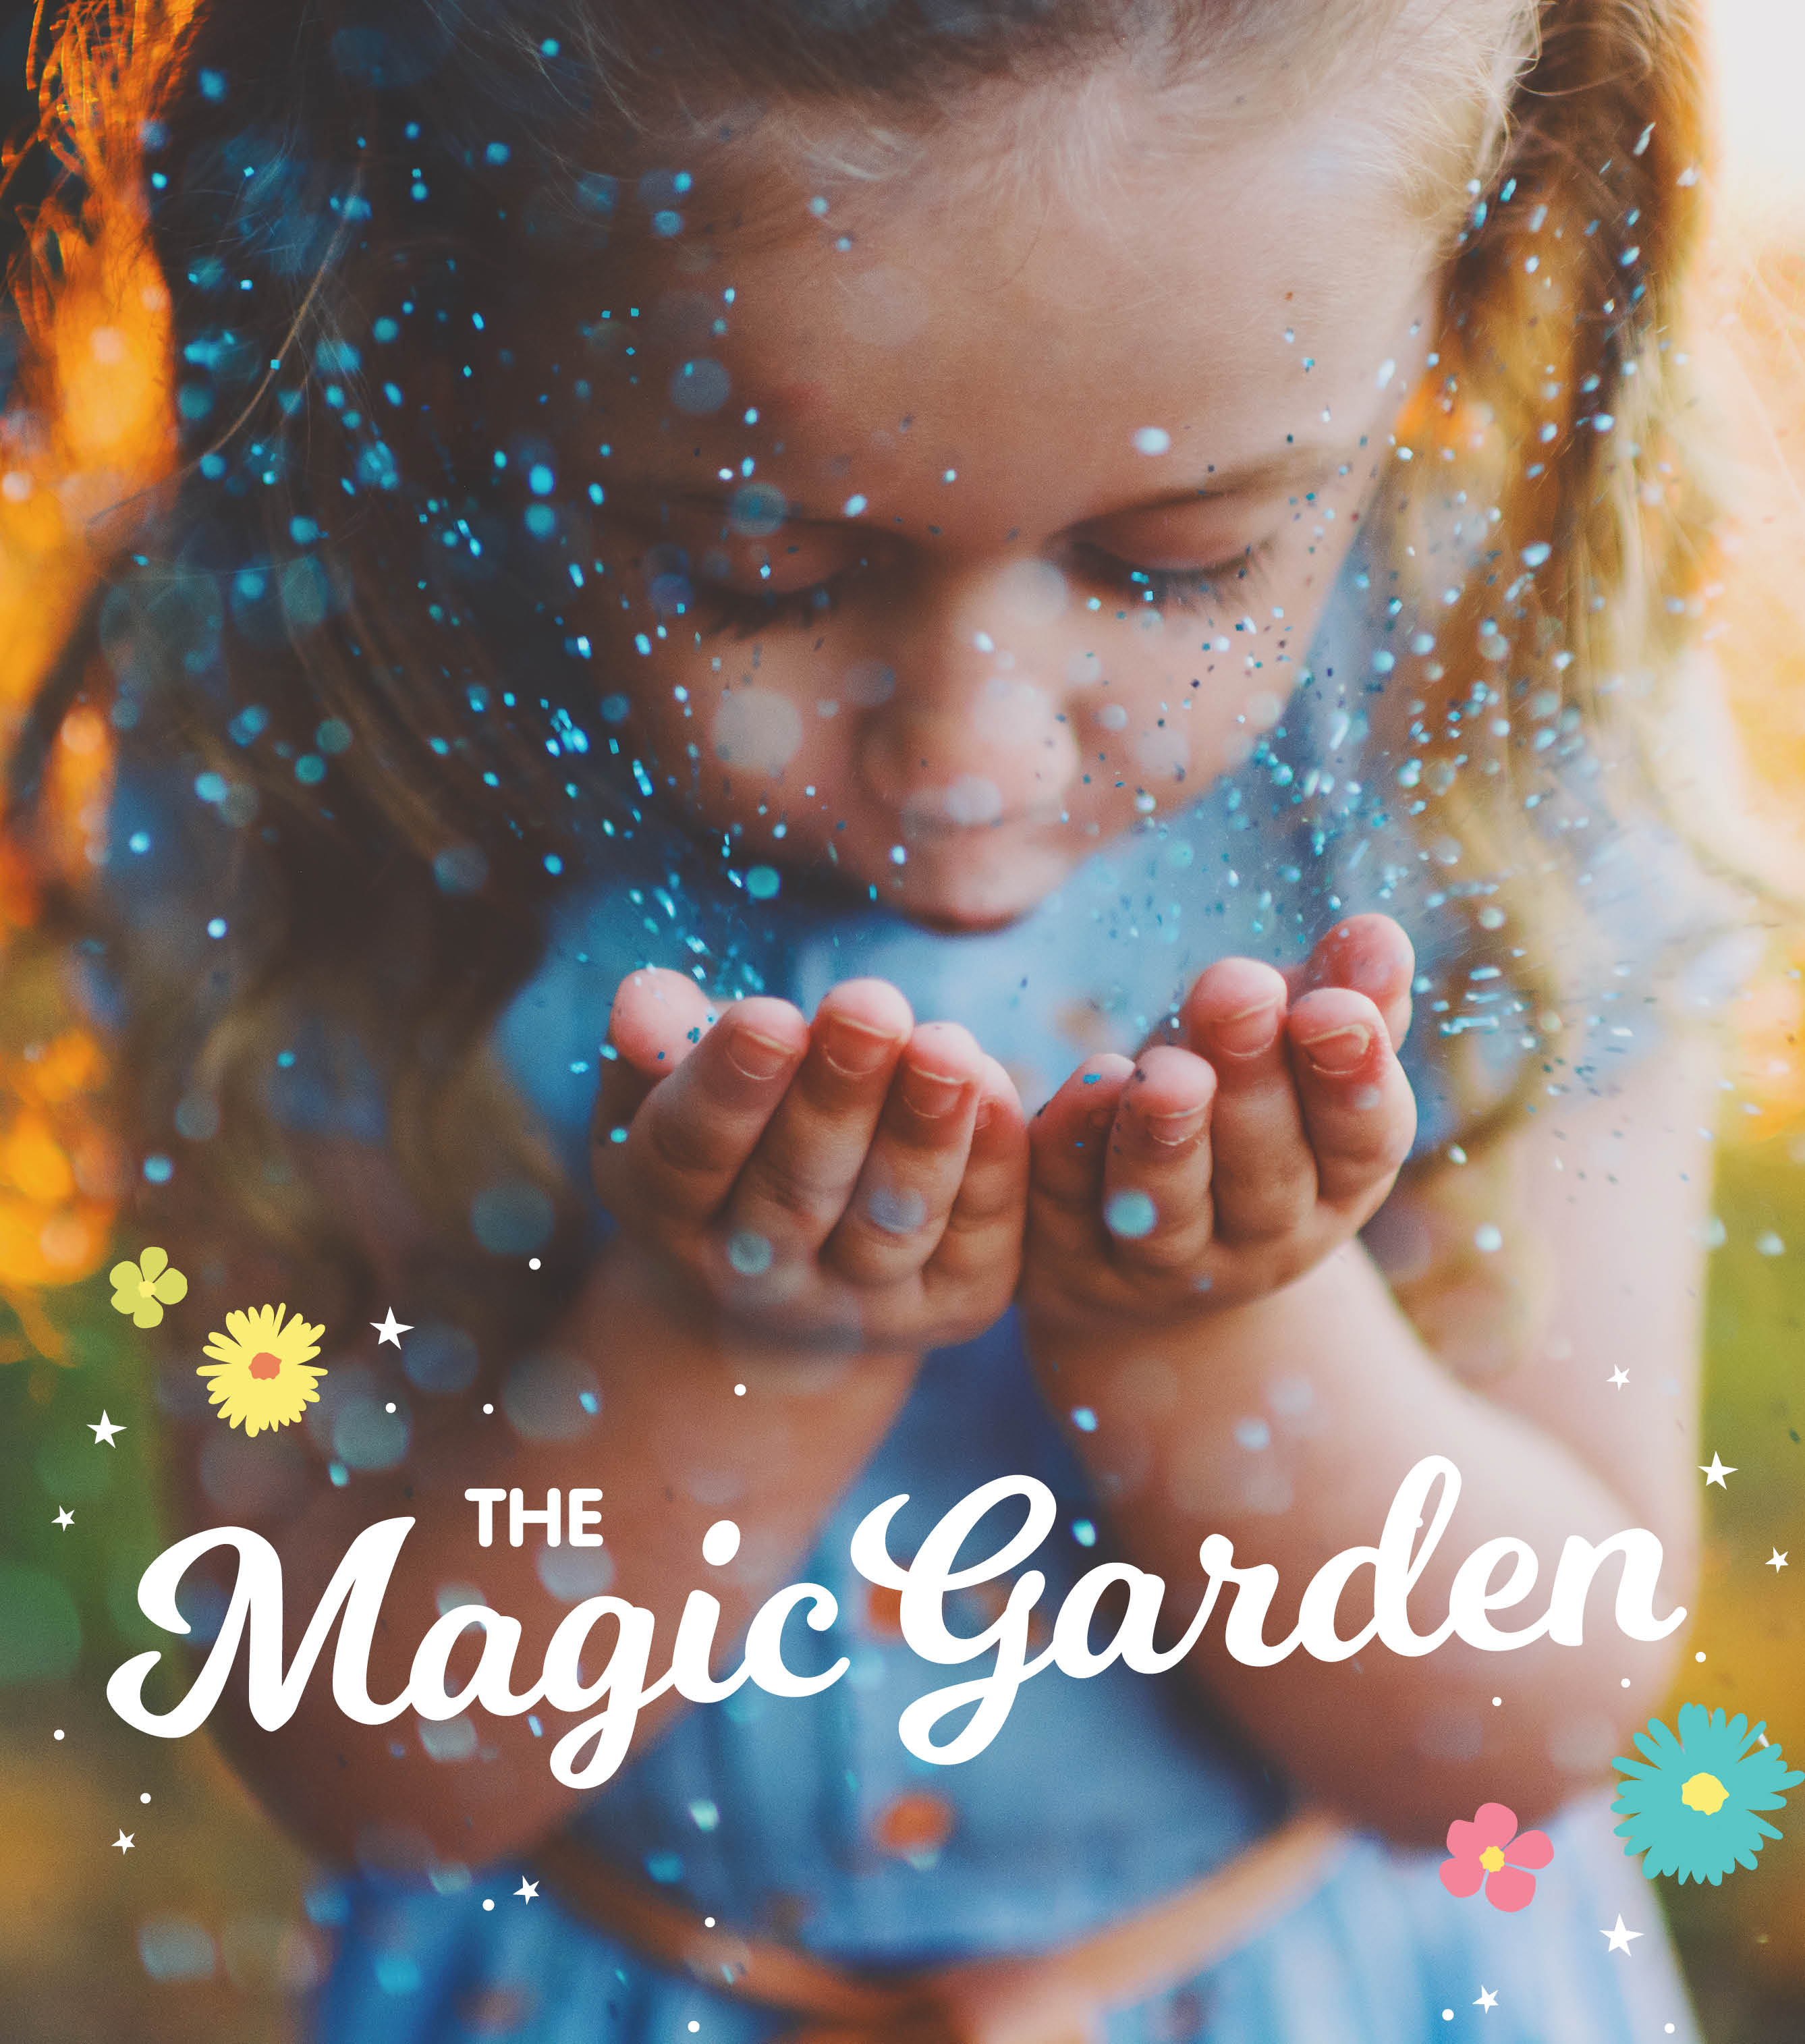 CH2925_Charter Hall_CampbelltownMall_Magic Garden-Web-ShopGuideTile-642x727-@2